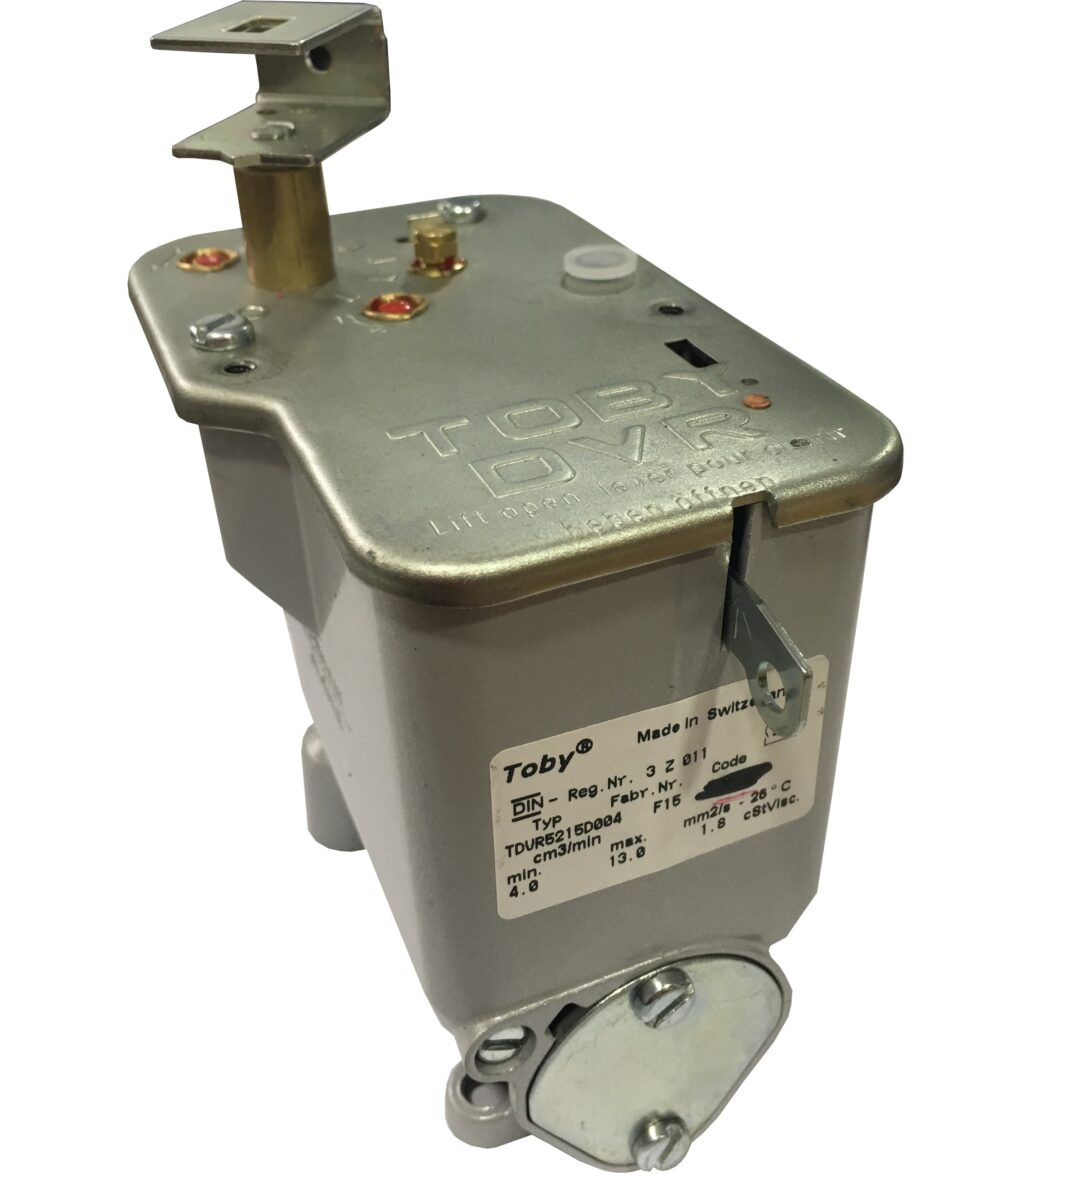 toby oil control valve instructions